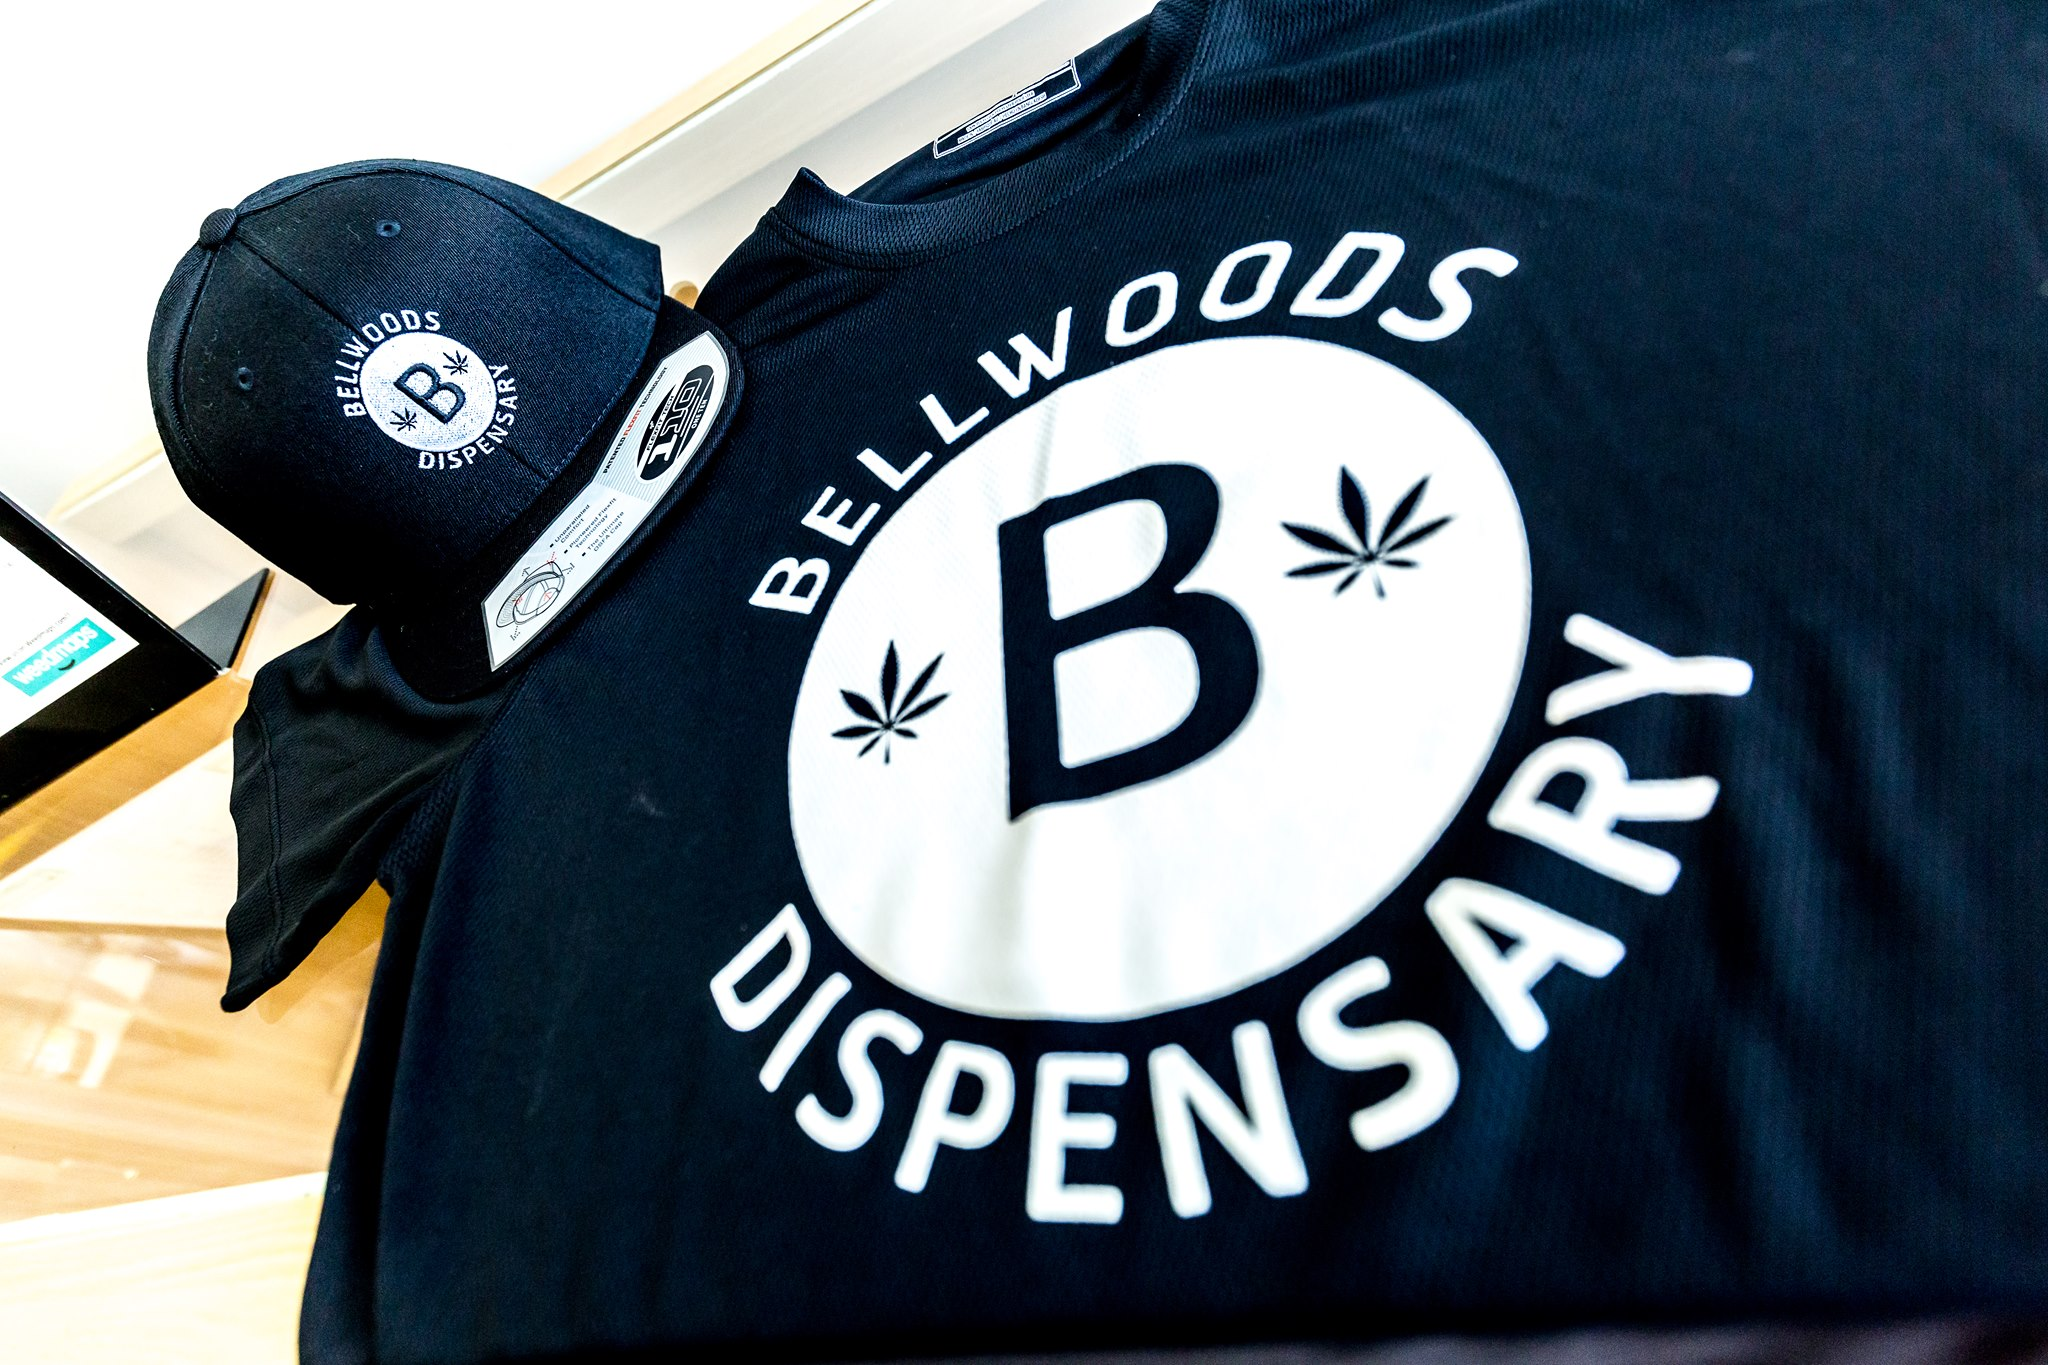 Four arrested at Bellwoods Dispensary in Toronto - Cannabis Life Network